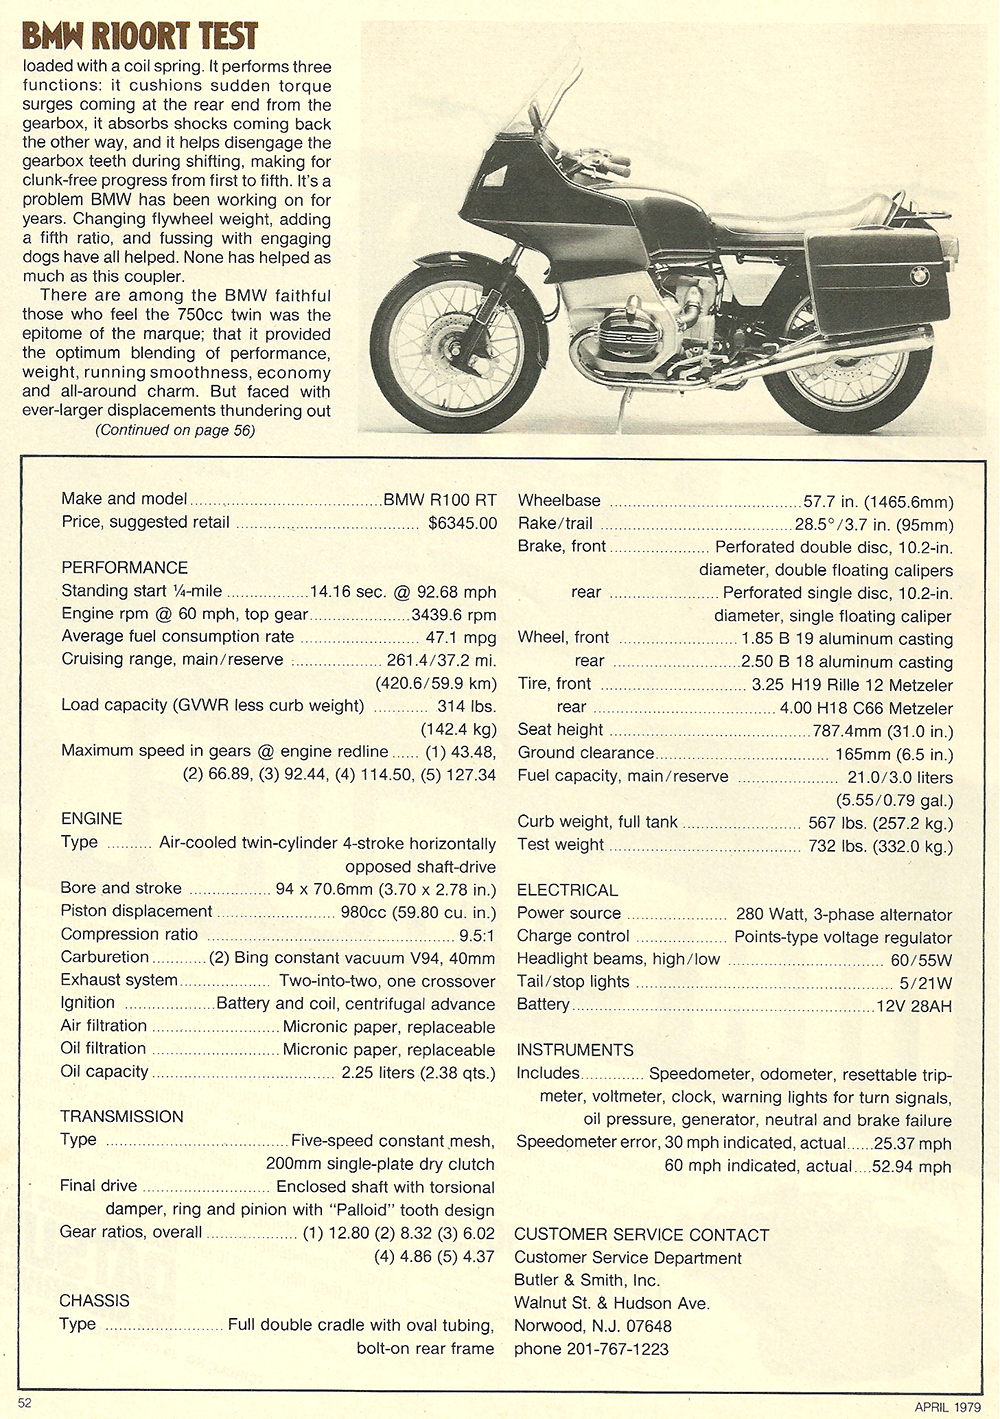 1979 BMW R100RT road test 08.jpg